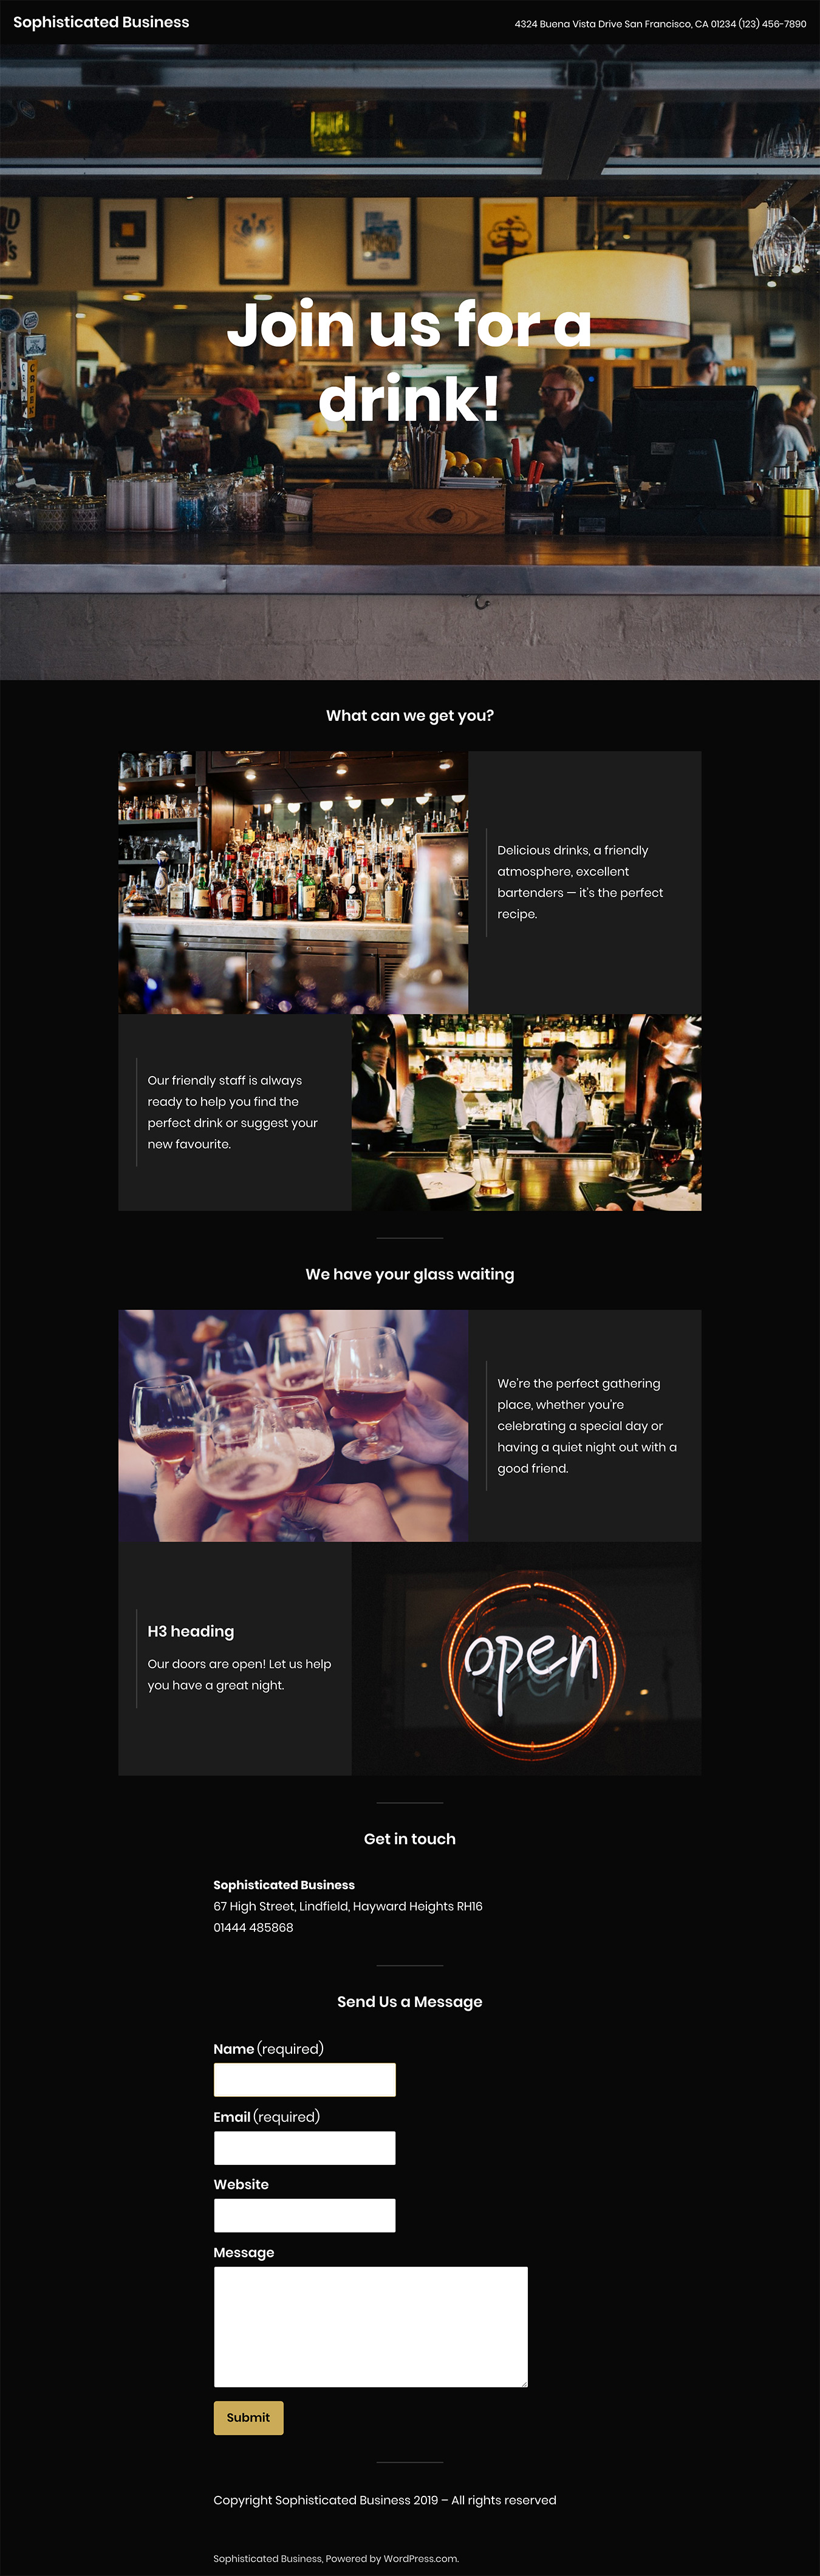 Screenshot of the Sophisticated Business theme